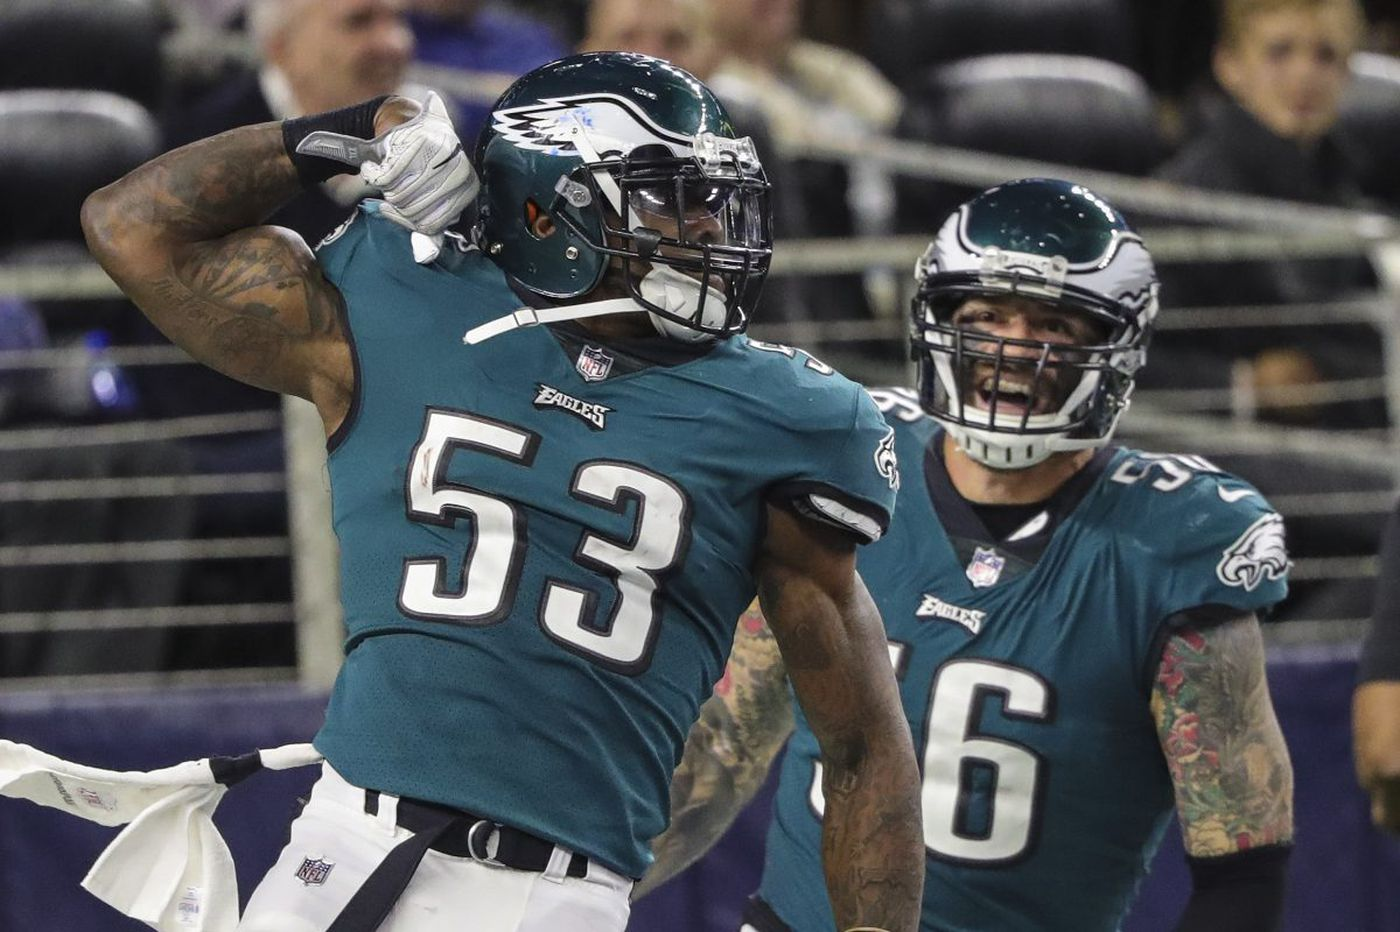 Eagles' life in Anaheim includes Nigel Bradham using Mike Trout's locker